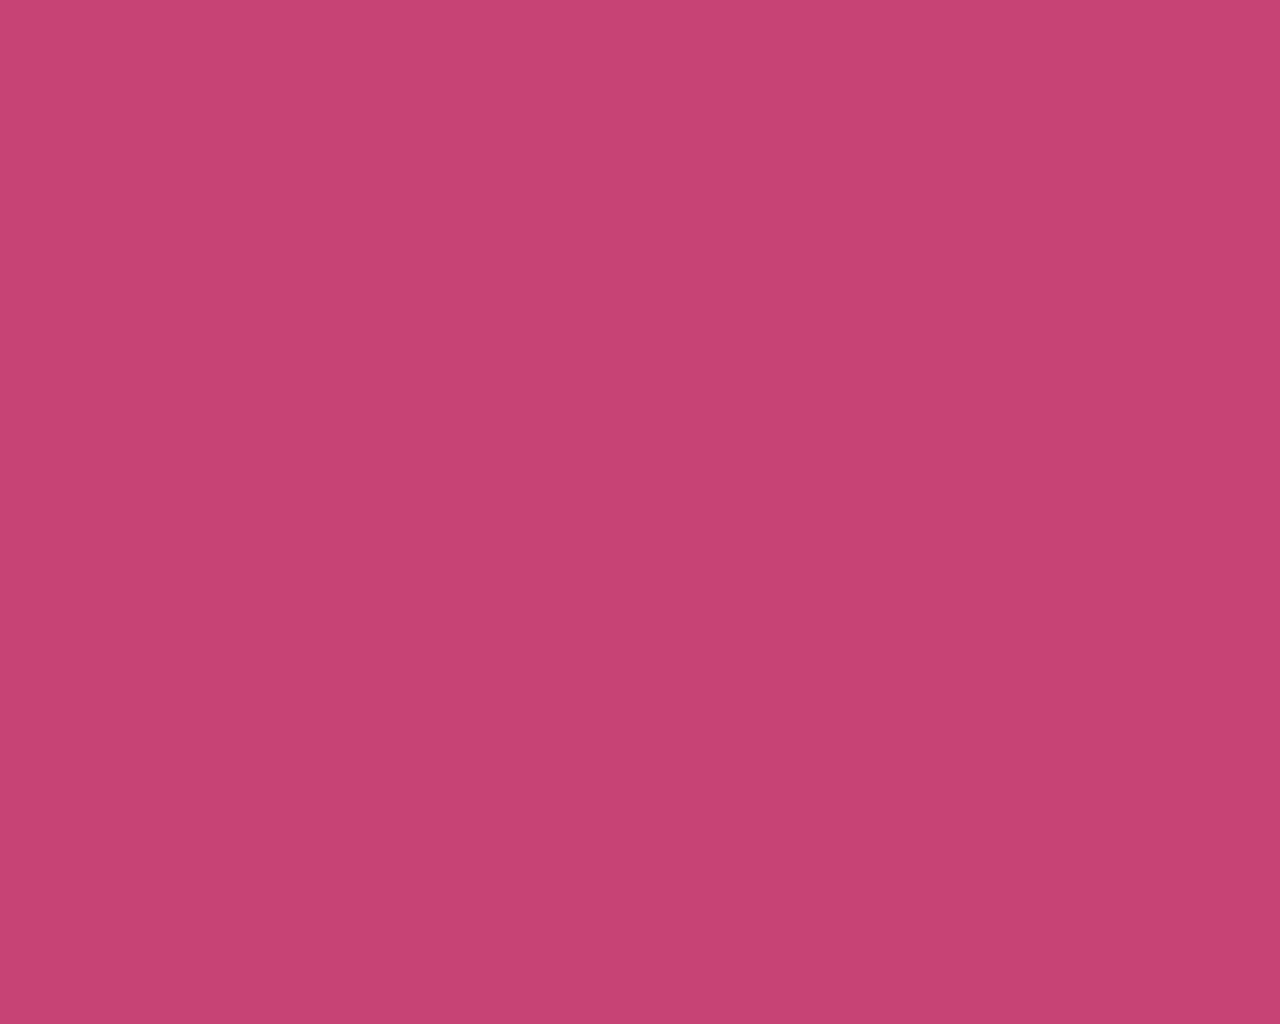 1280x1024 Fuchsia Rose Solid Color Background